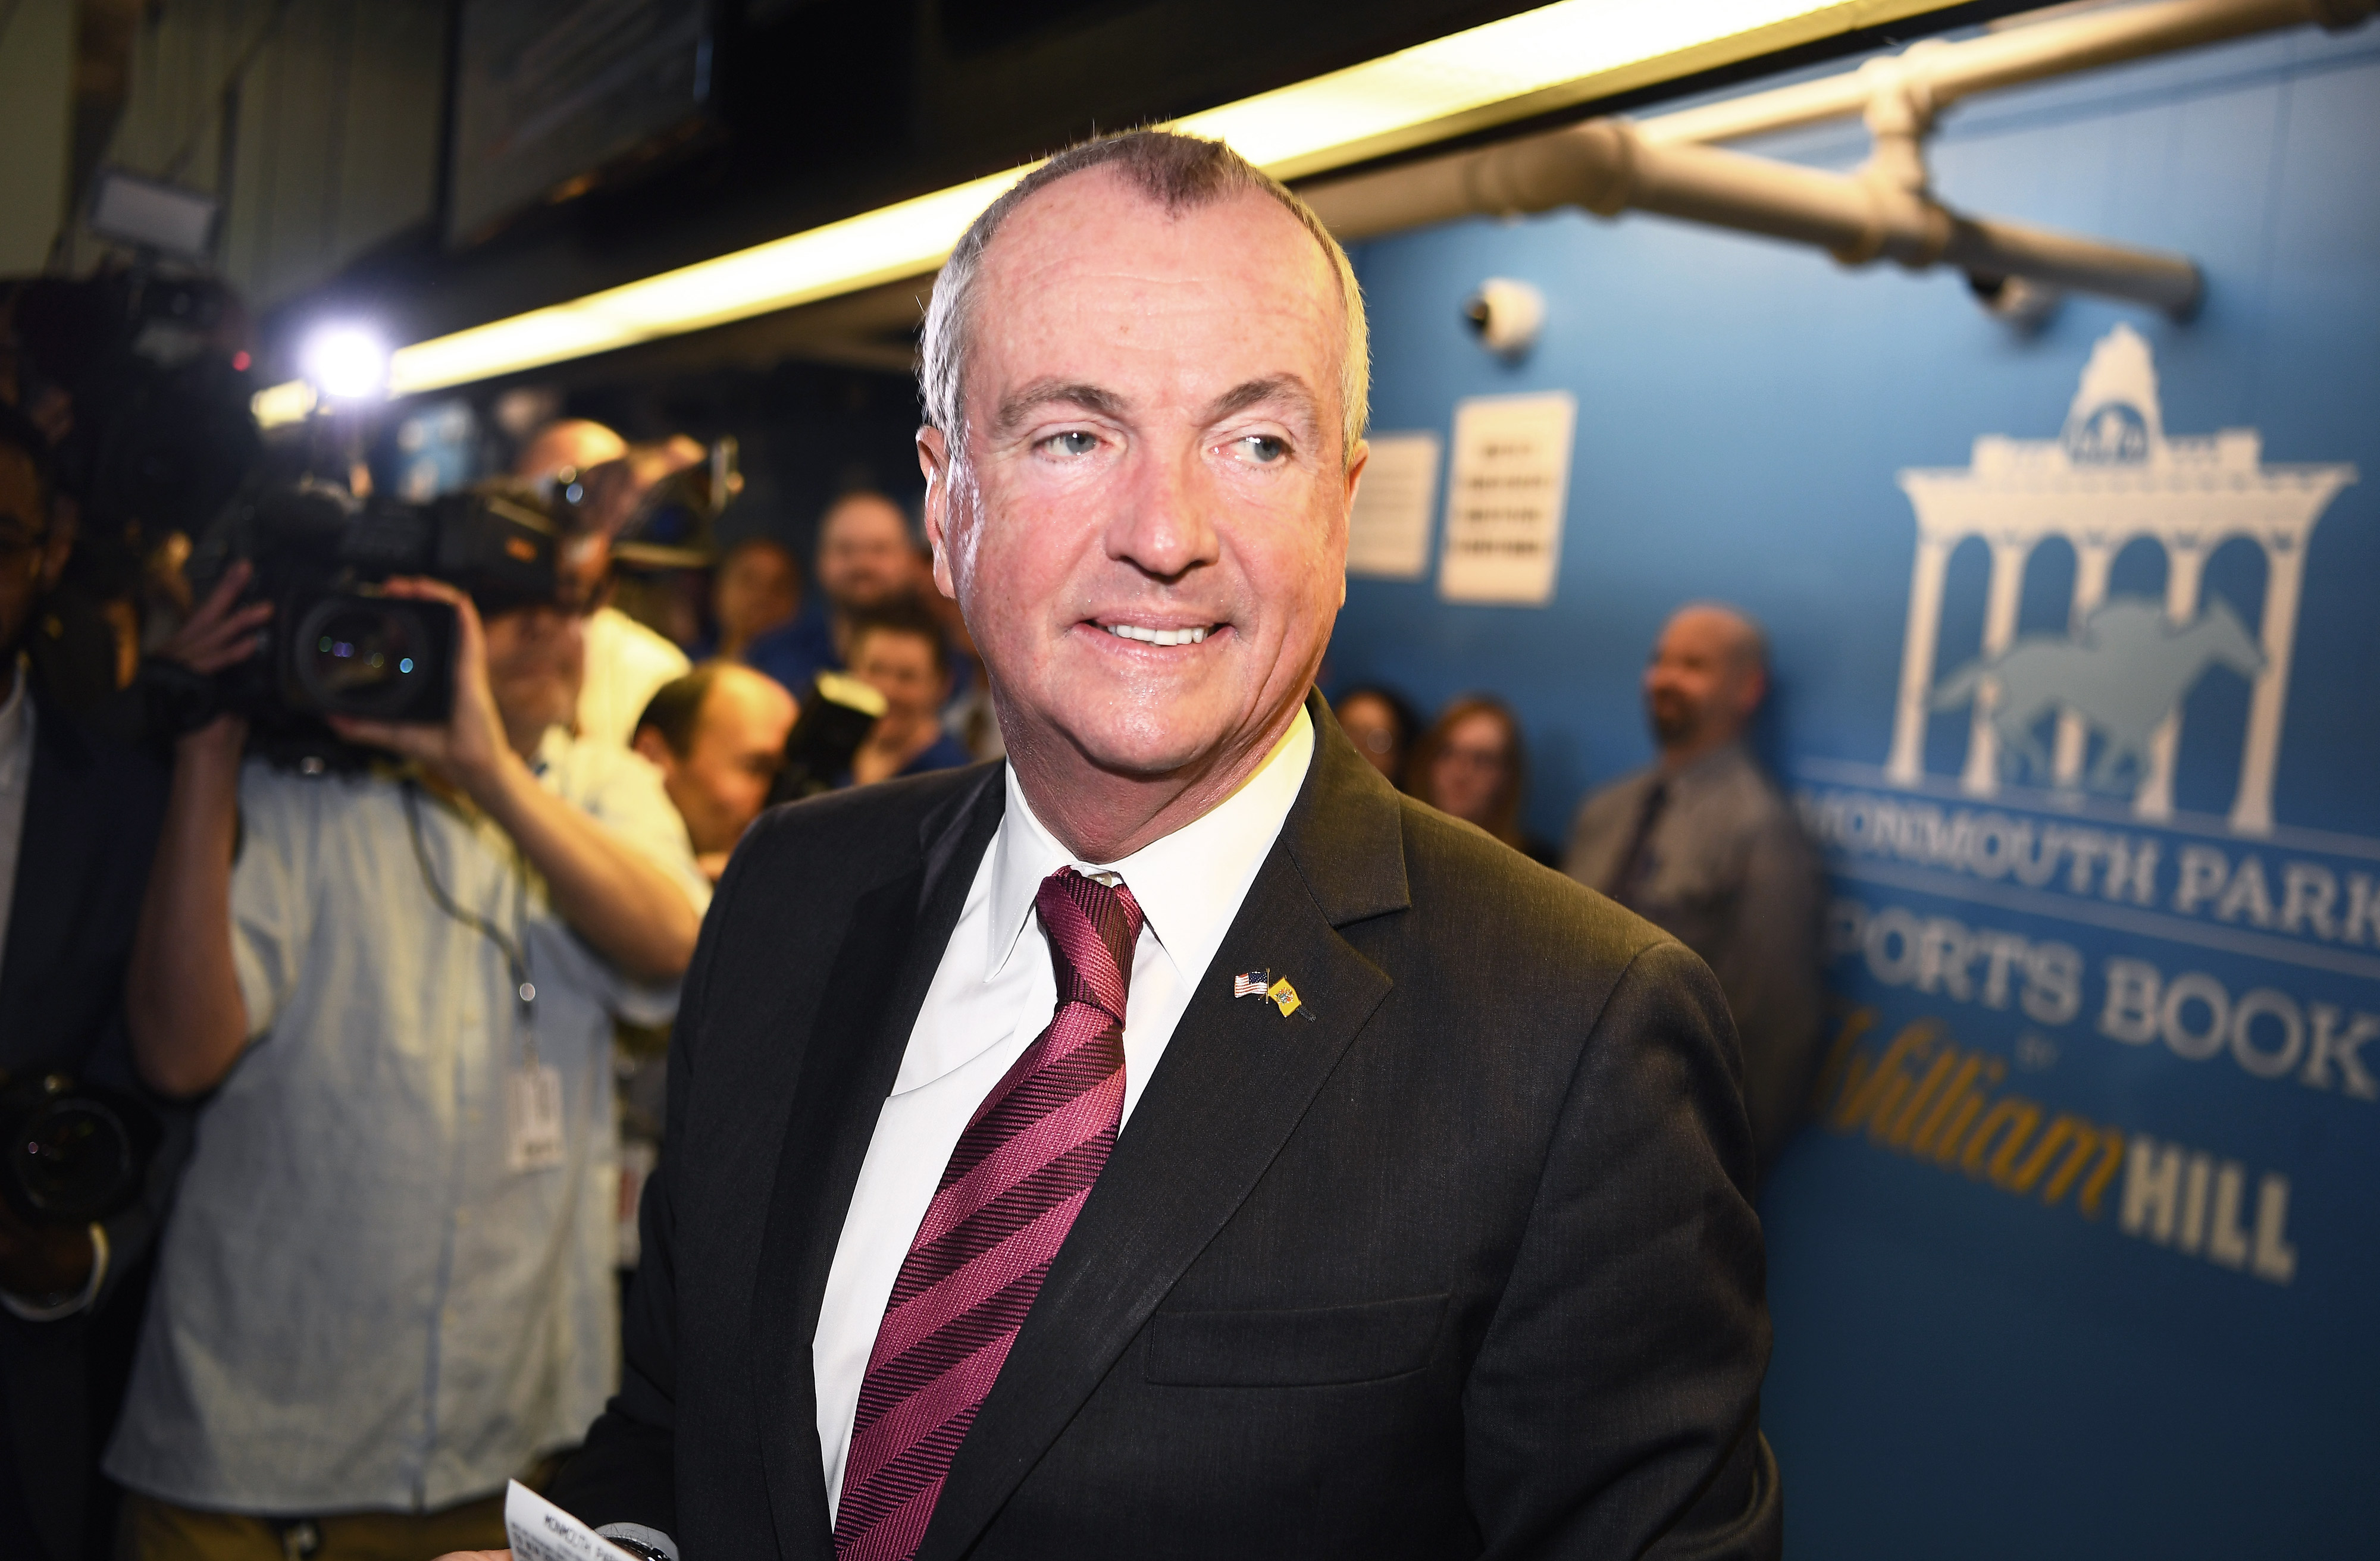 New Jersey governor calls for 'postmortem' of federal response to coronavirus